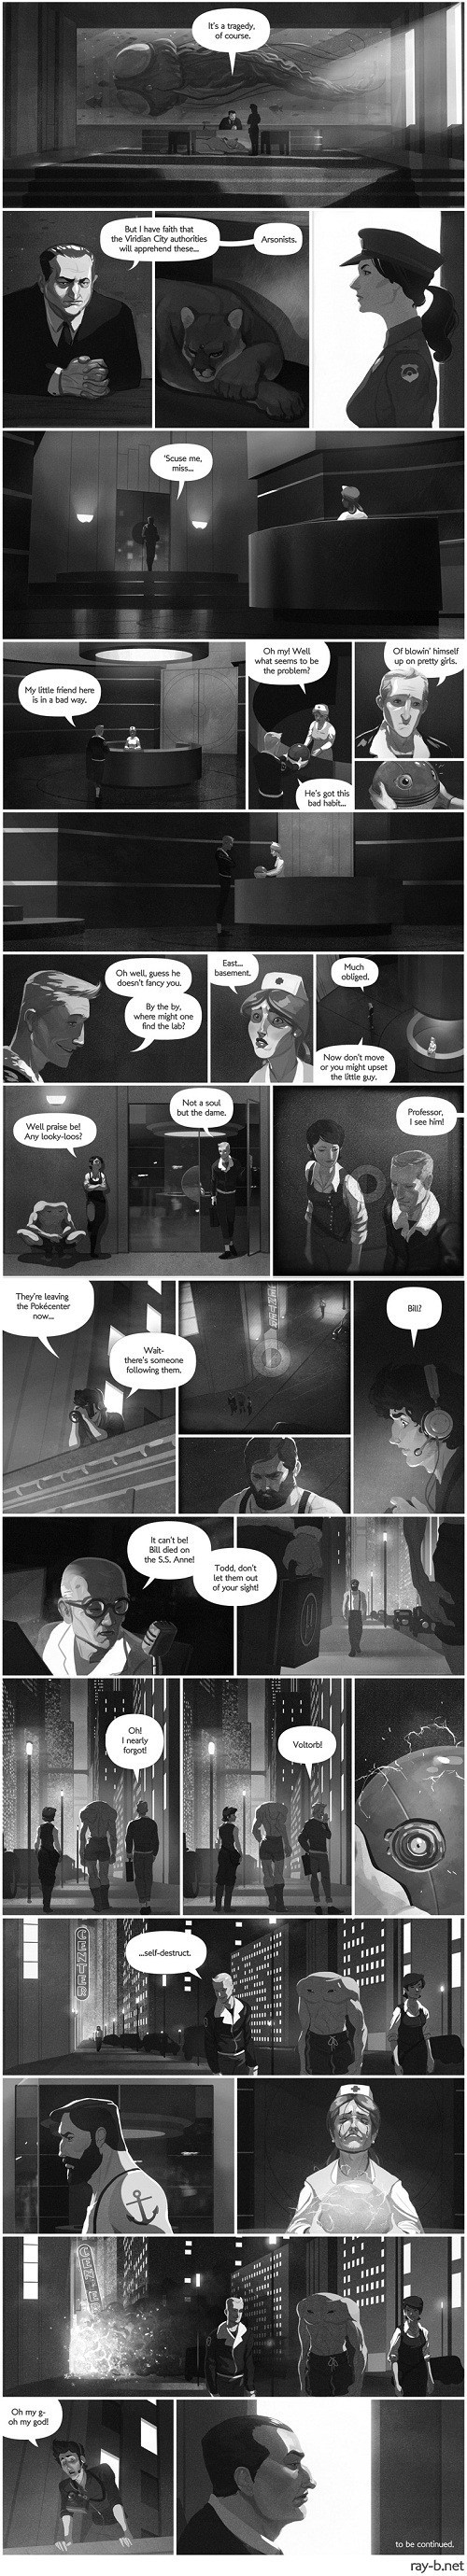 Pokémon voltorb todd snap self destruct comic noir - 7035168000